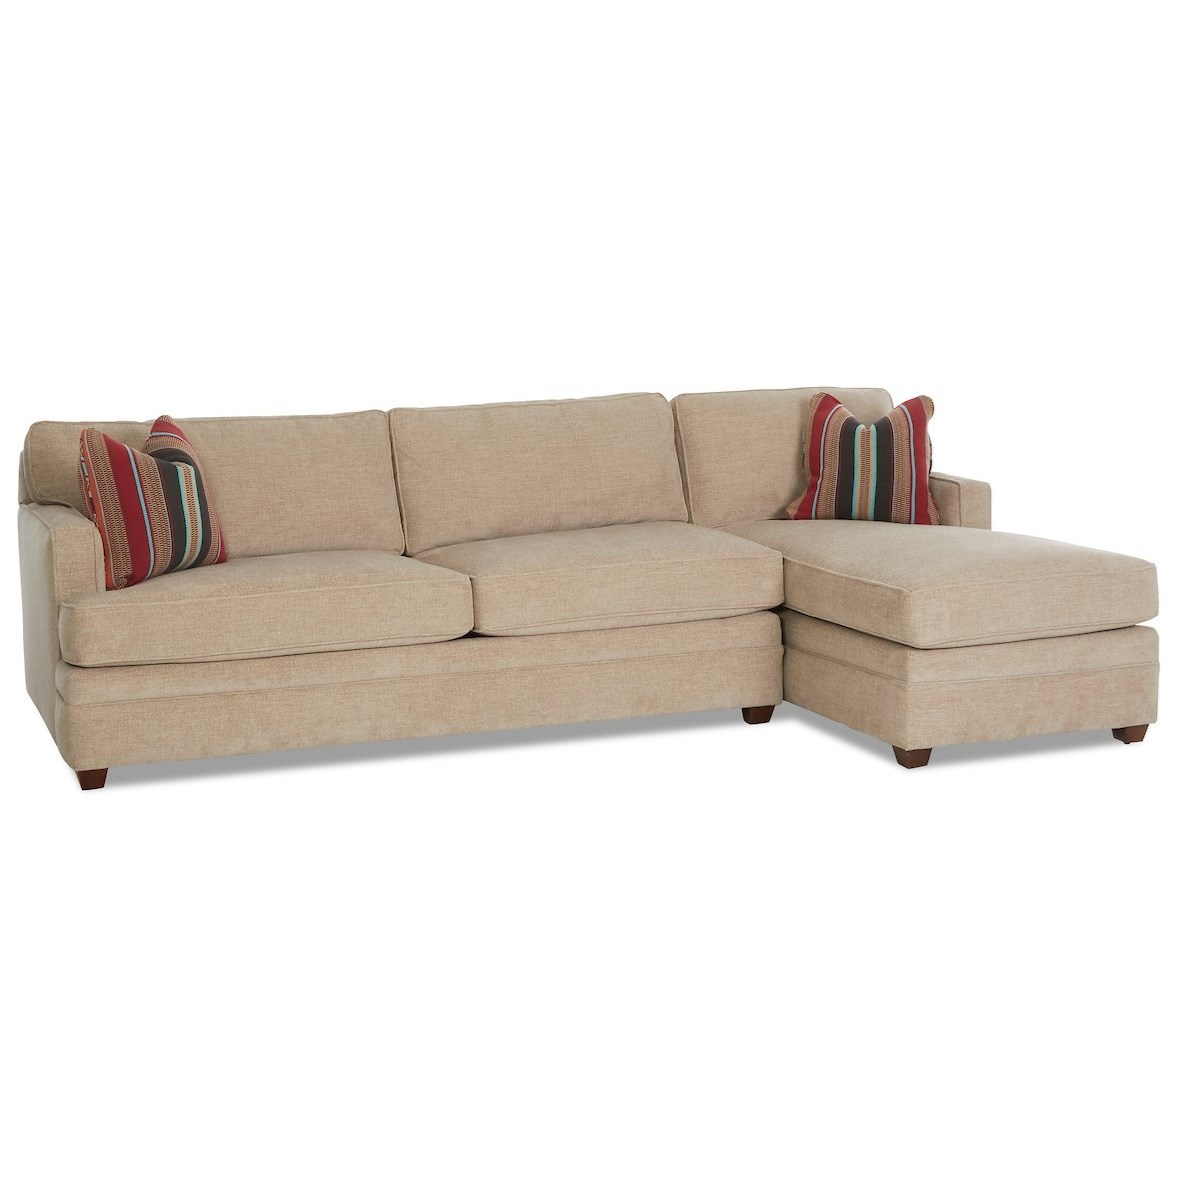 Living Your Way 2-Piece Sectional w/ LAF Innerspring Sleeper by Klaussner at Johnny Janosik